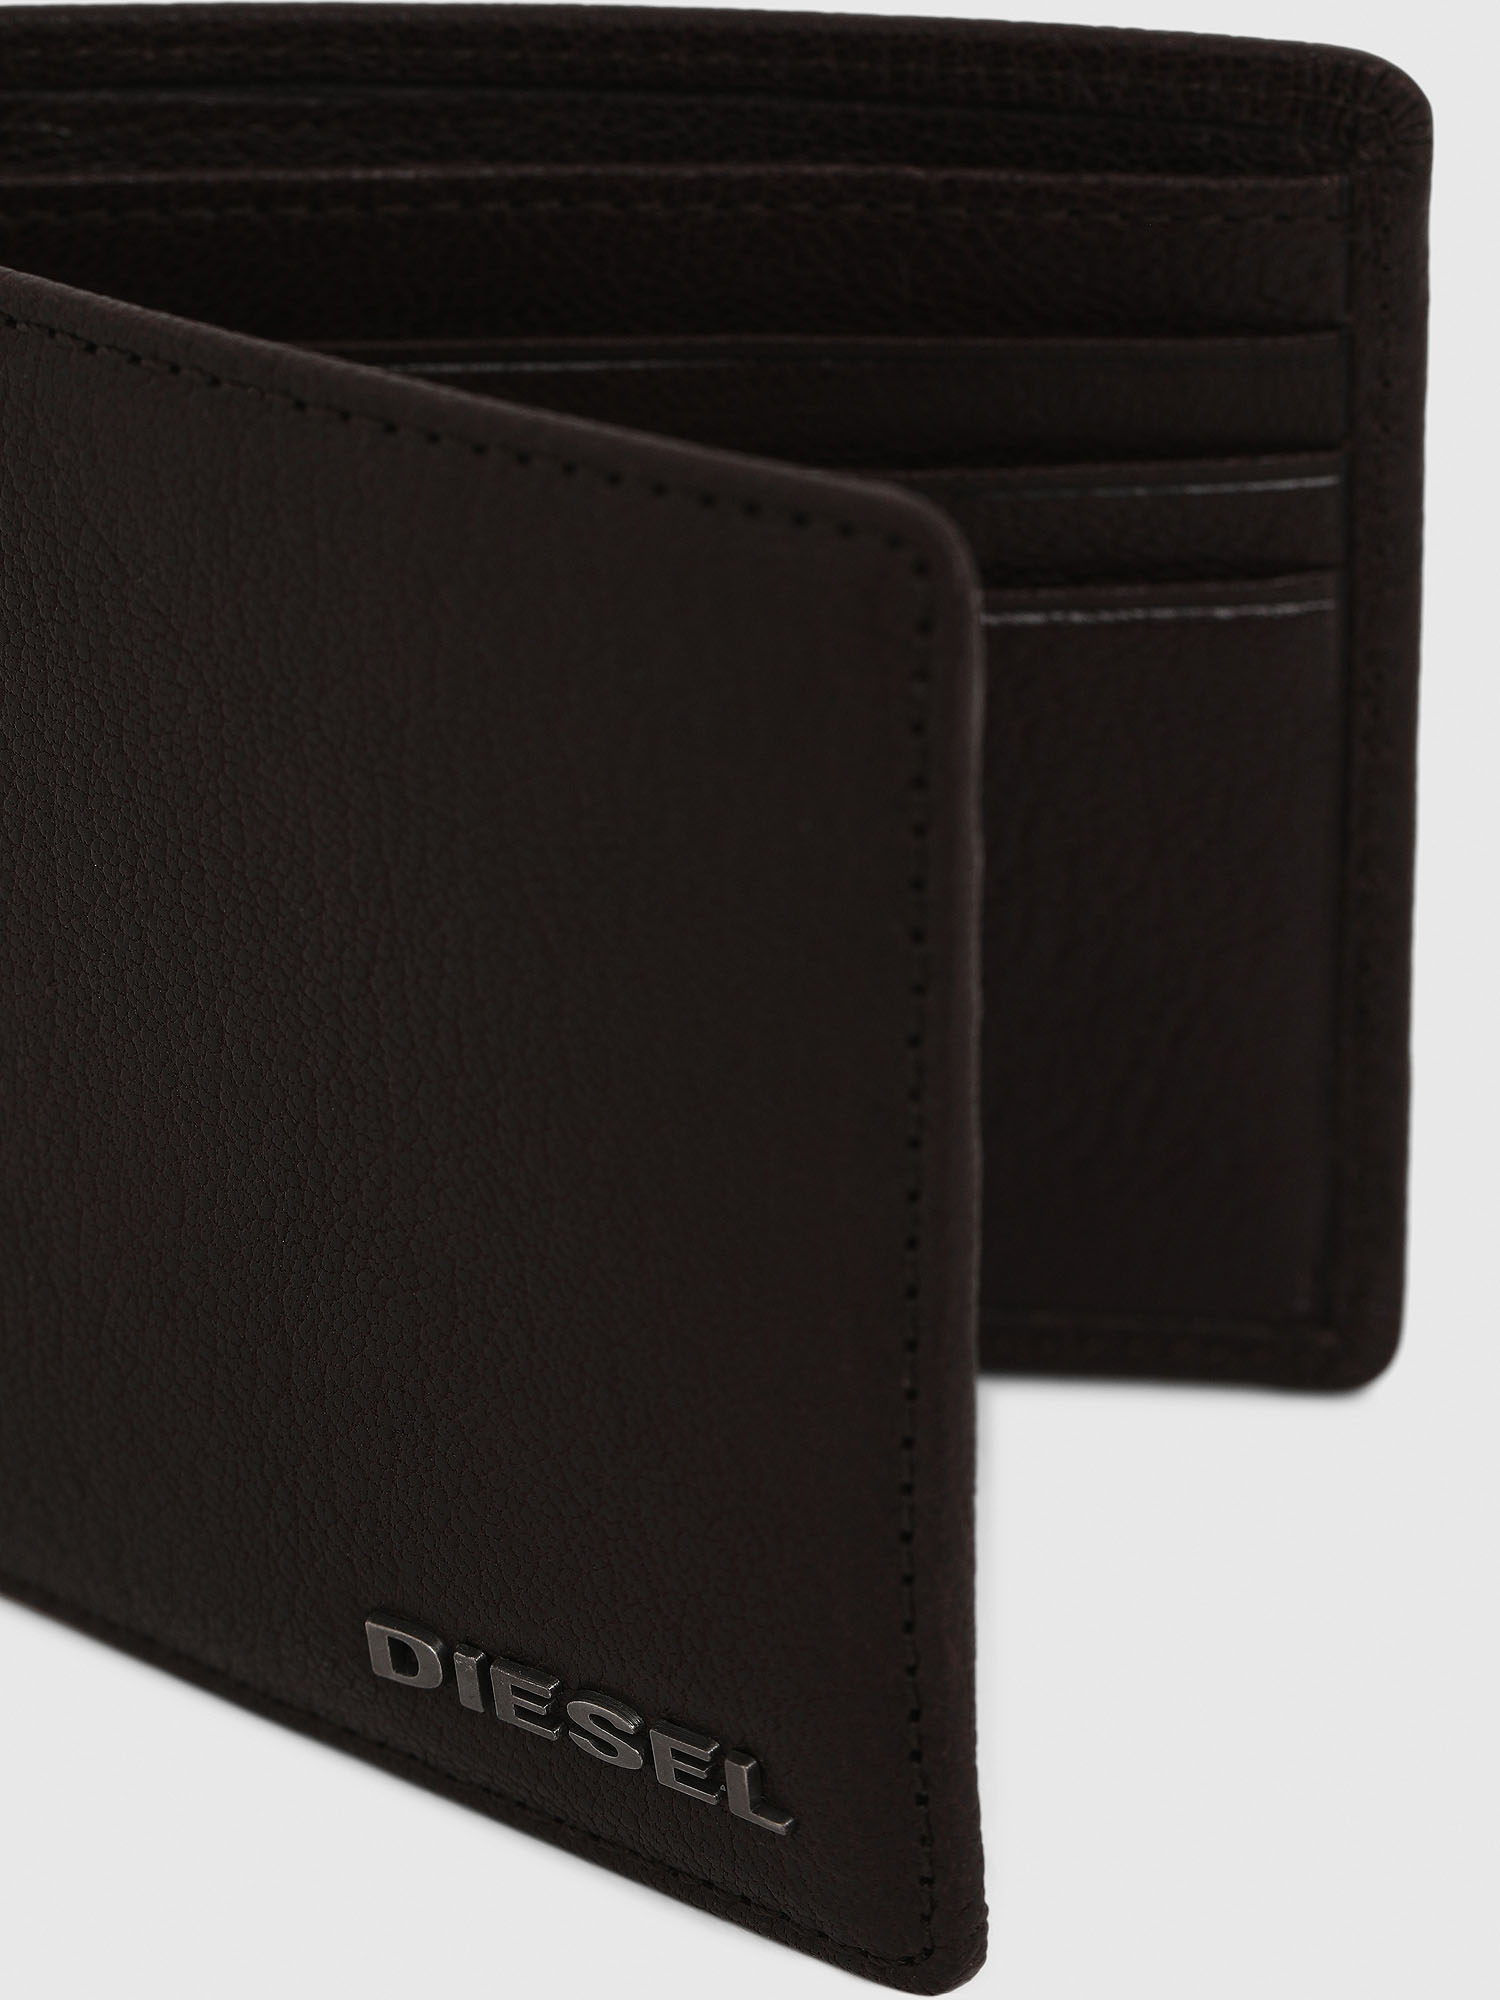 Diesel - NEELA XS,  - Small Wallets - Image 5